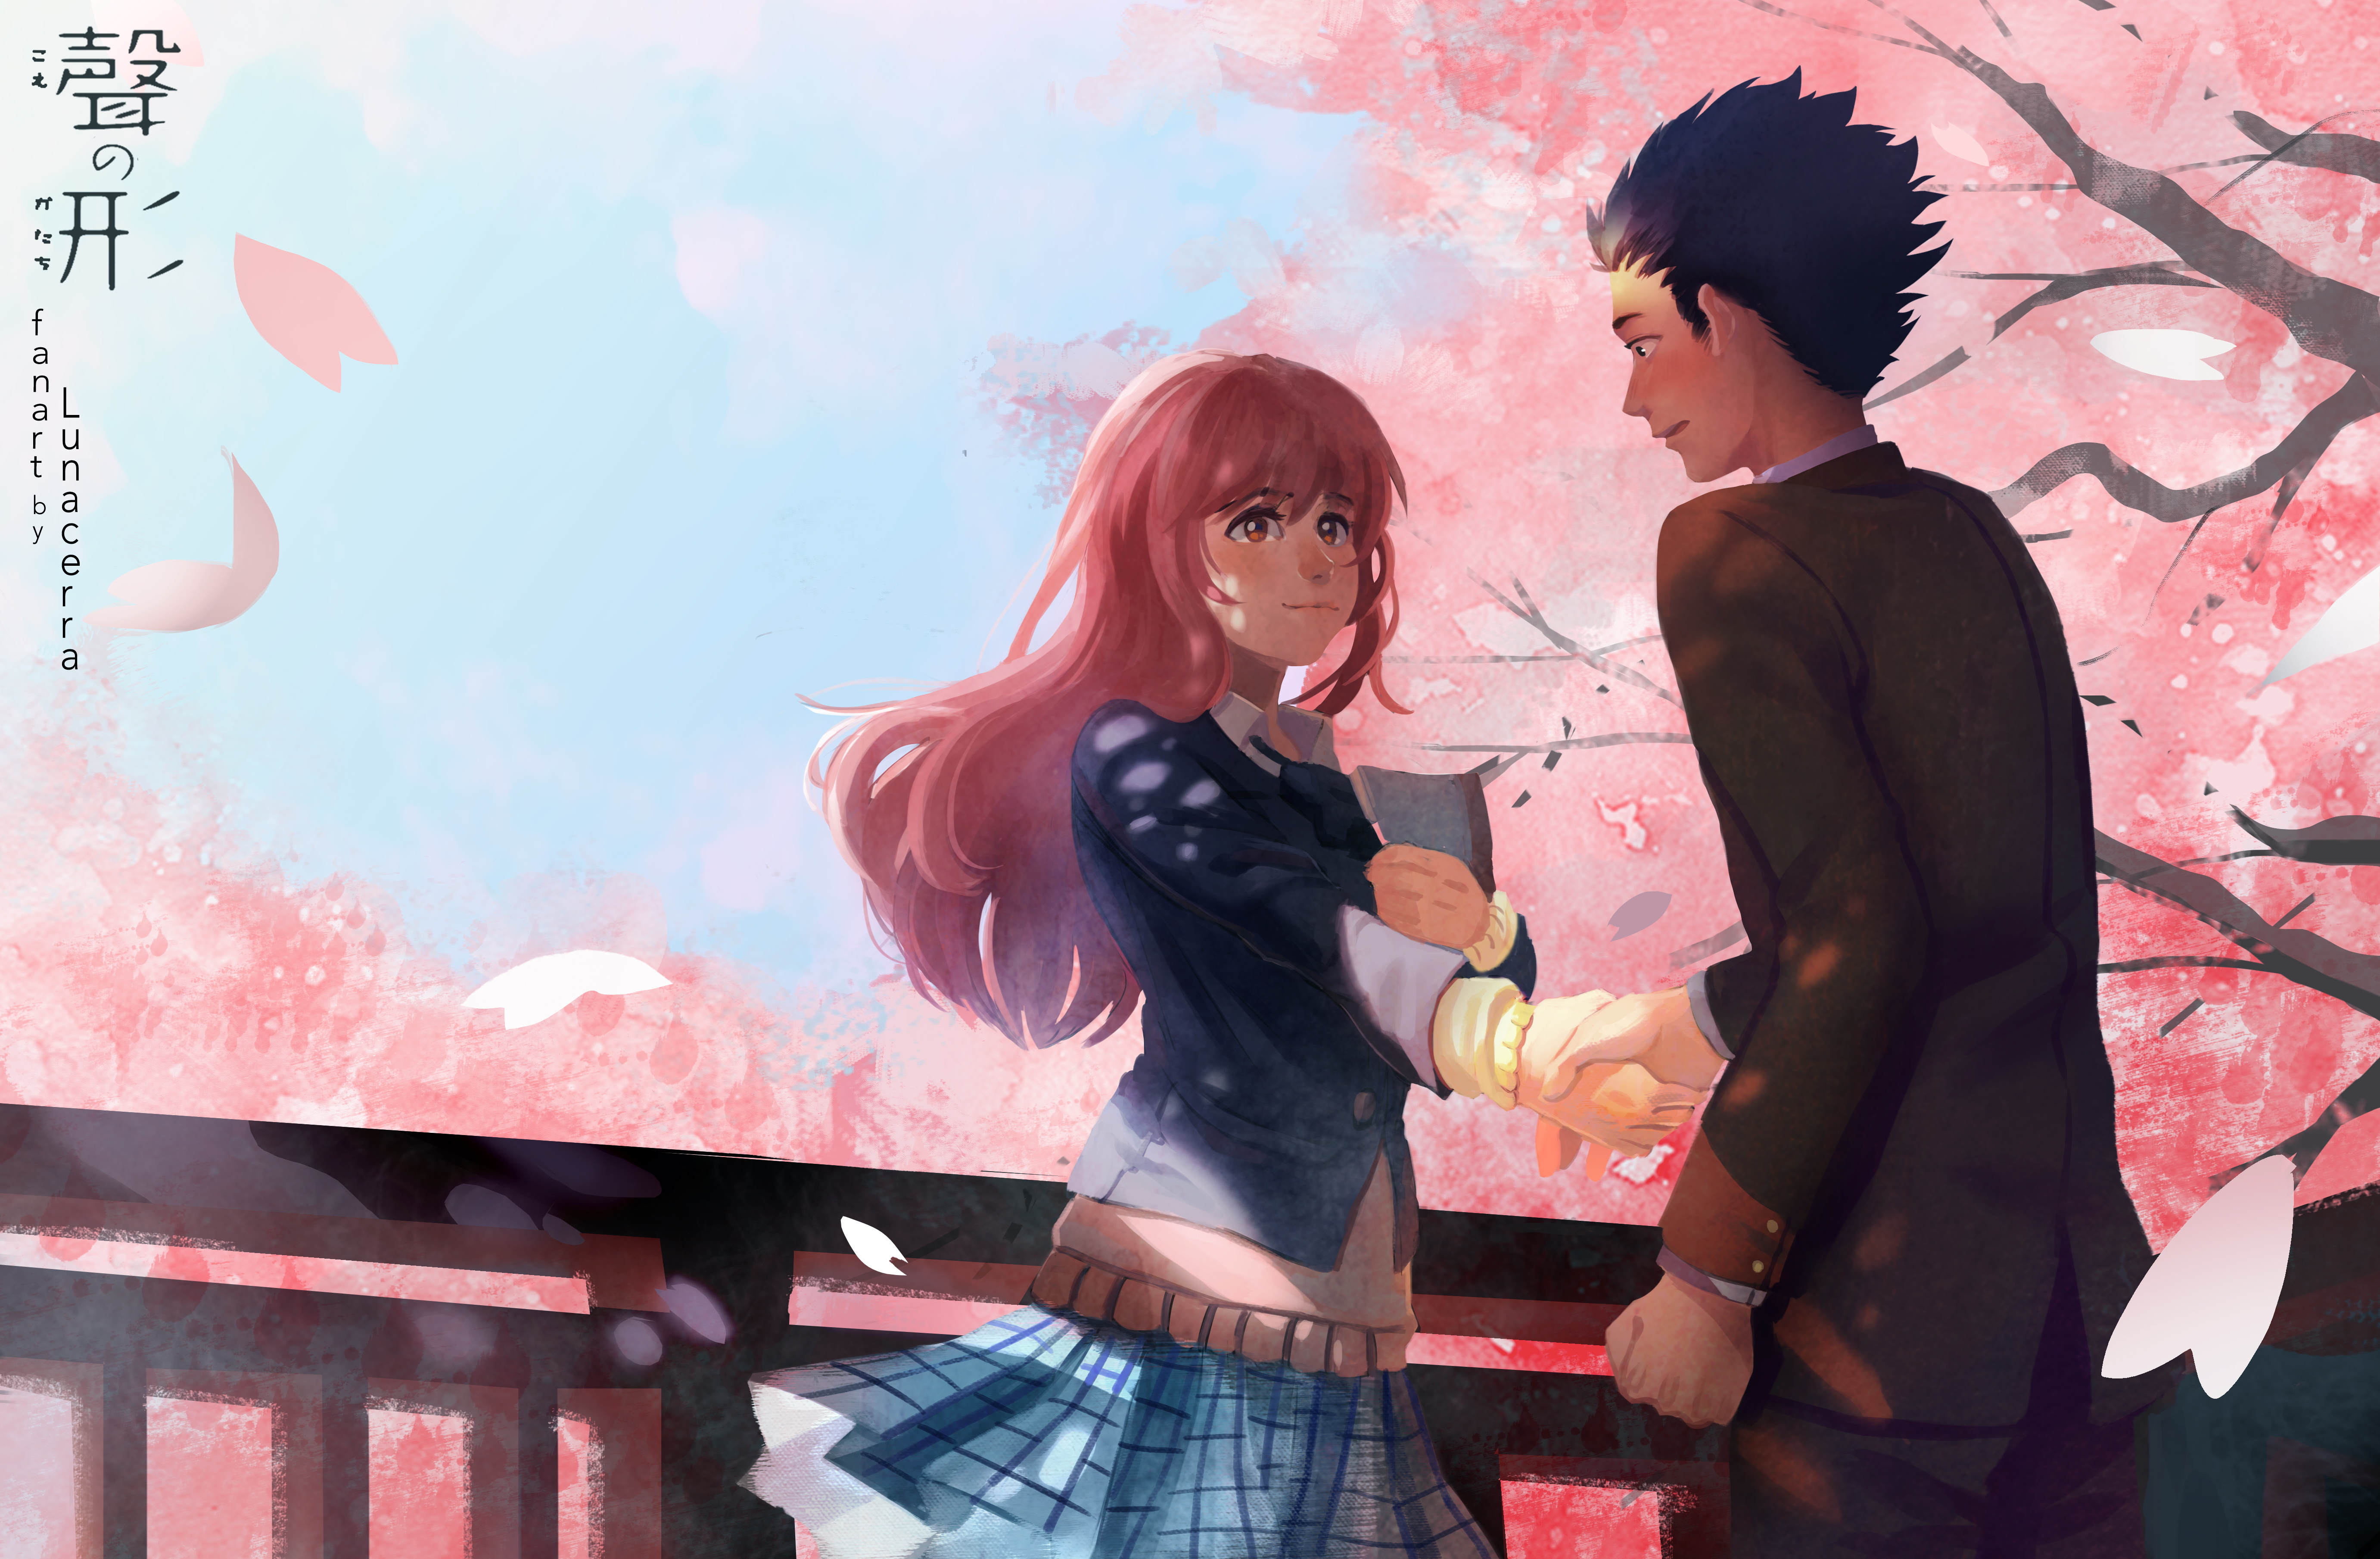 Koe No Katachi Wallpapers, Pictures, Images